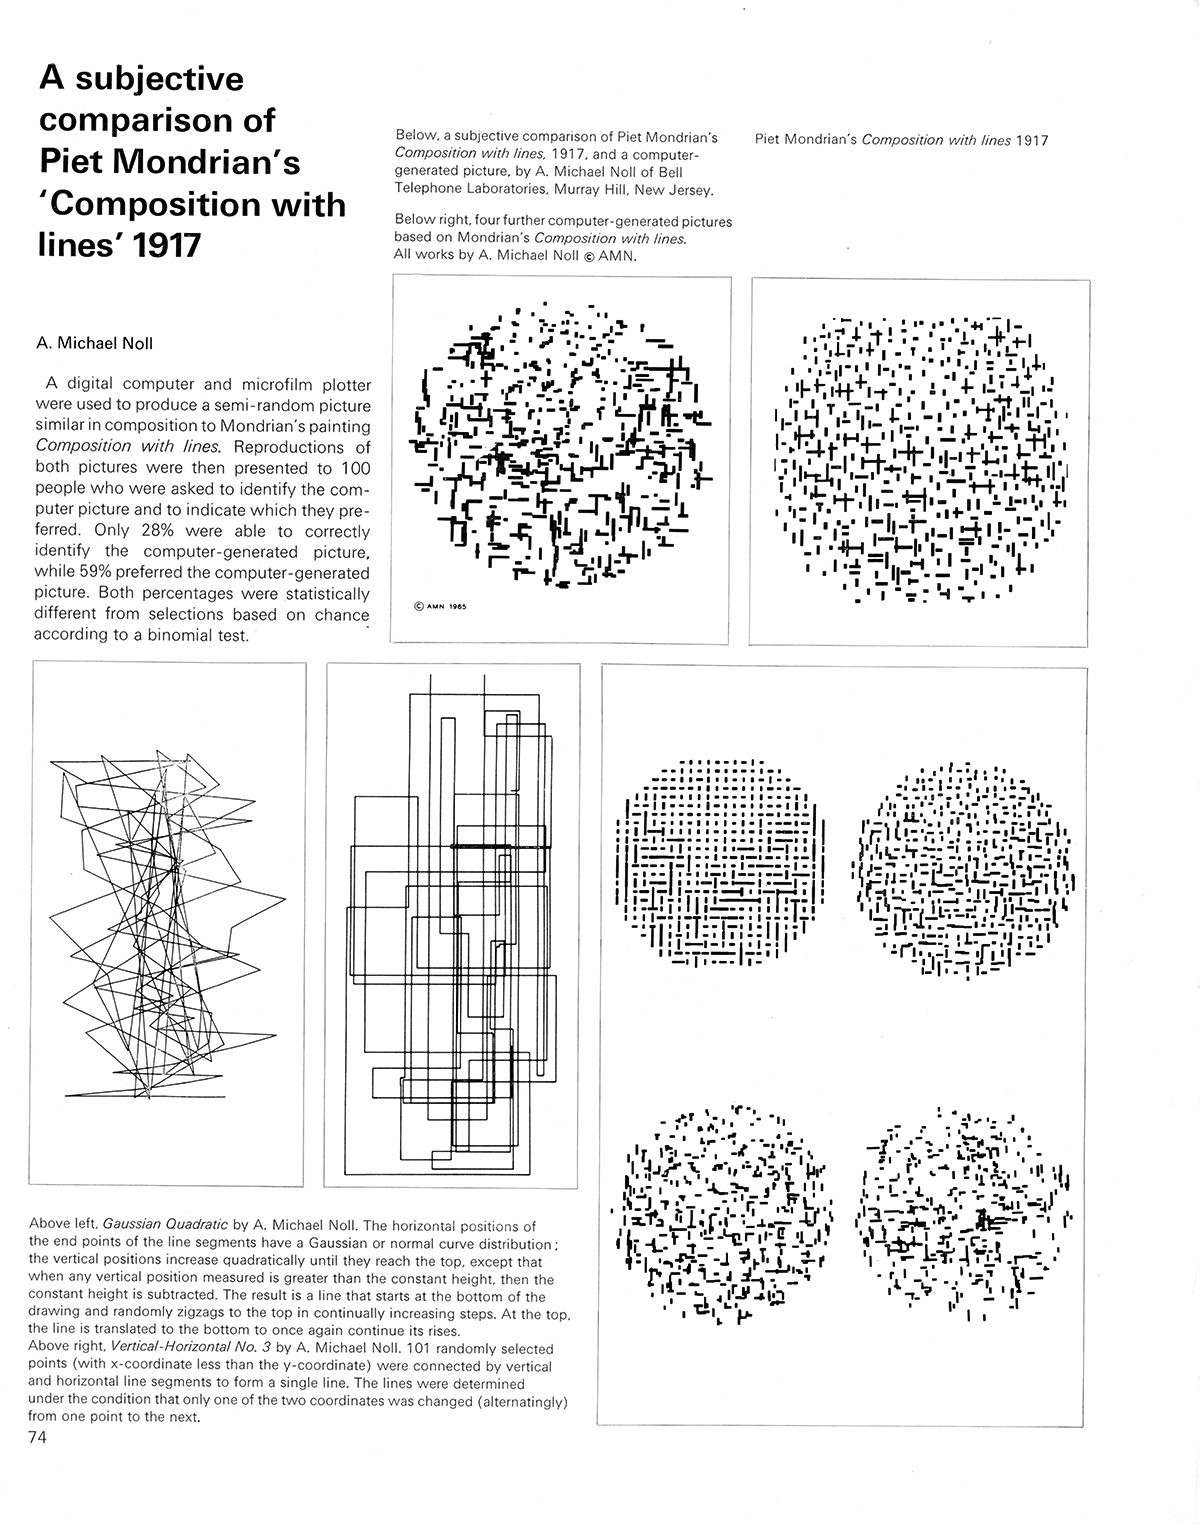 A subjective comparison of Piet Mondrian's 'Composition with lines' 1917 by A. Michael Noll. Cybernetic Serendipity: The Computer and the Arts, Studio International Special Issue, 1968, page 74.